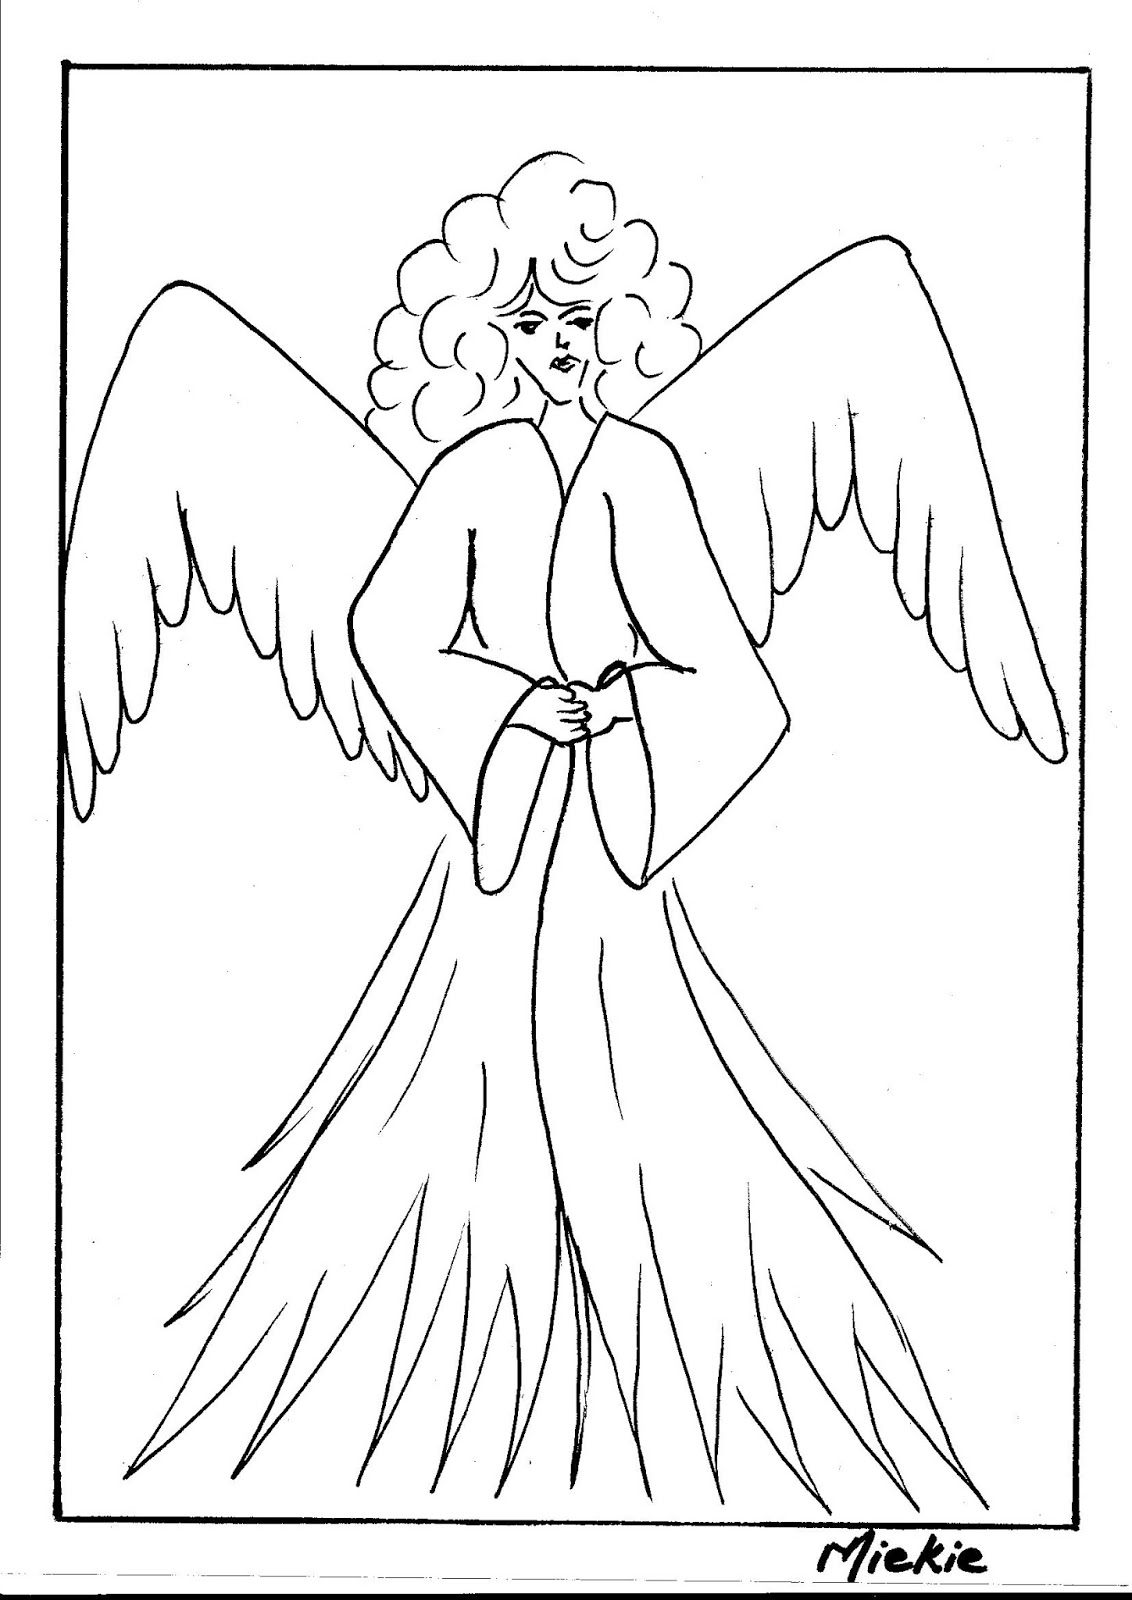 Christmas tree drawing outline - In Today S Blog I Show You How To Draw The Nativity Scene An Angel And A Christmas Tree In The Previous Blog I Shared The Steps For Santa Clause And A